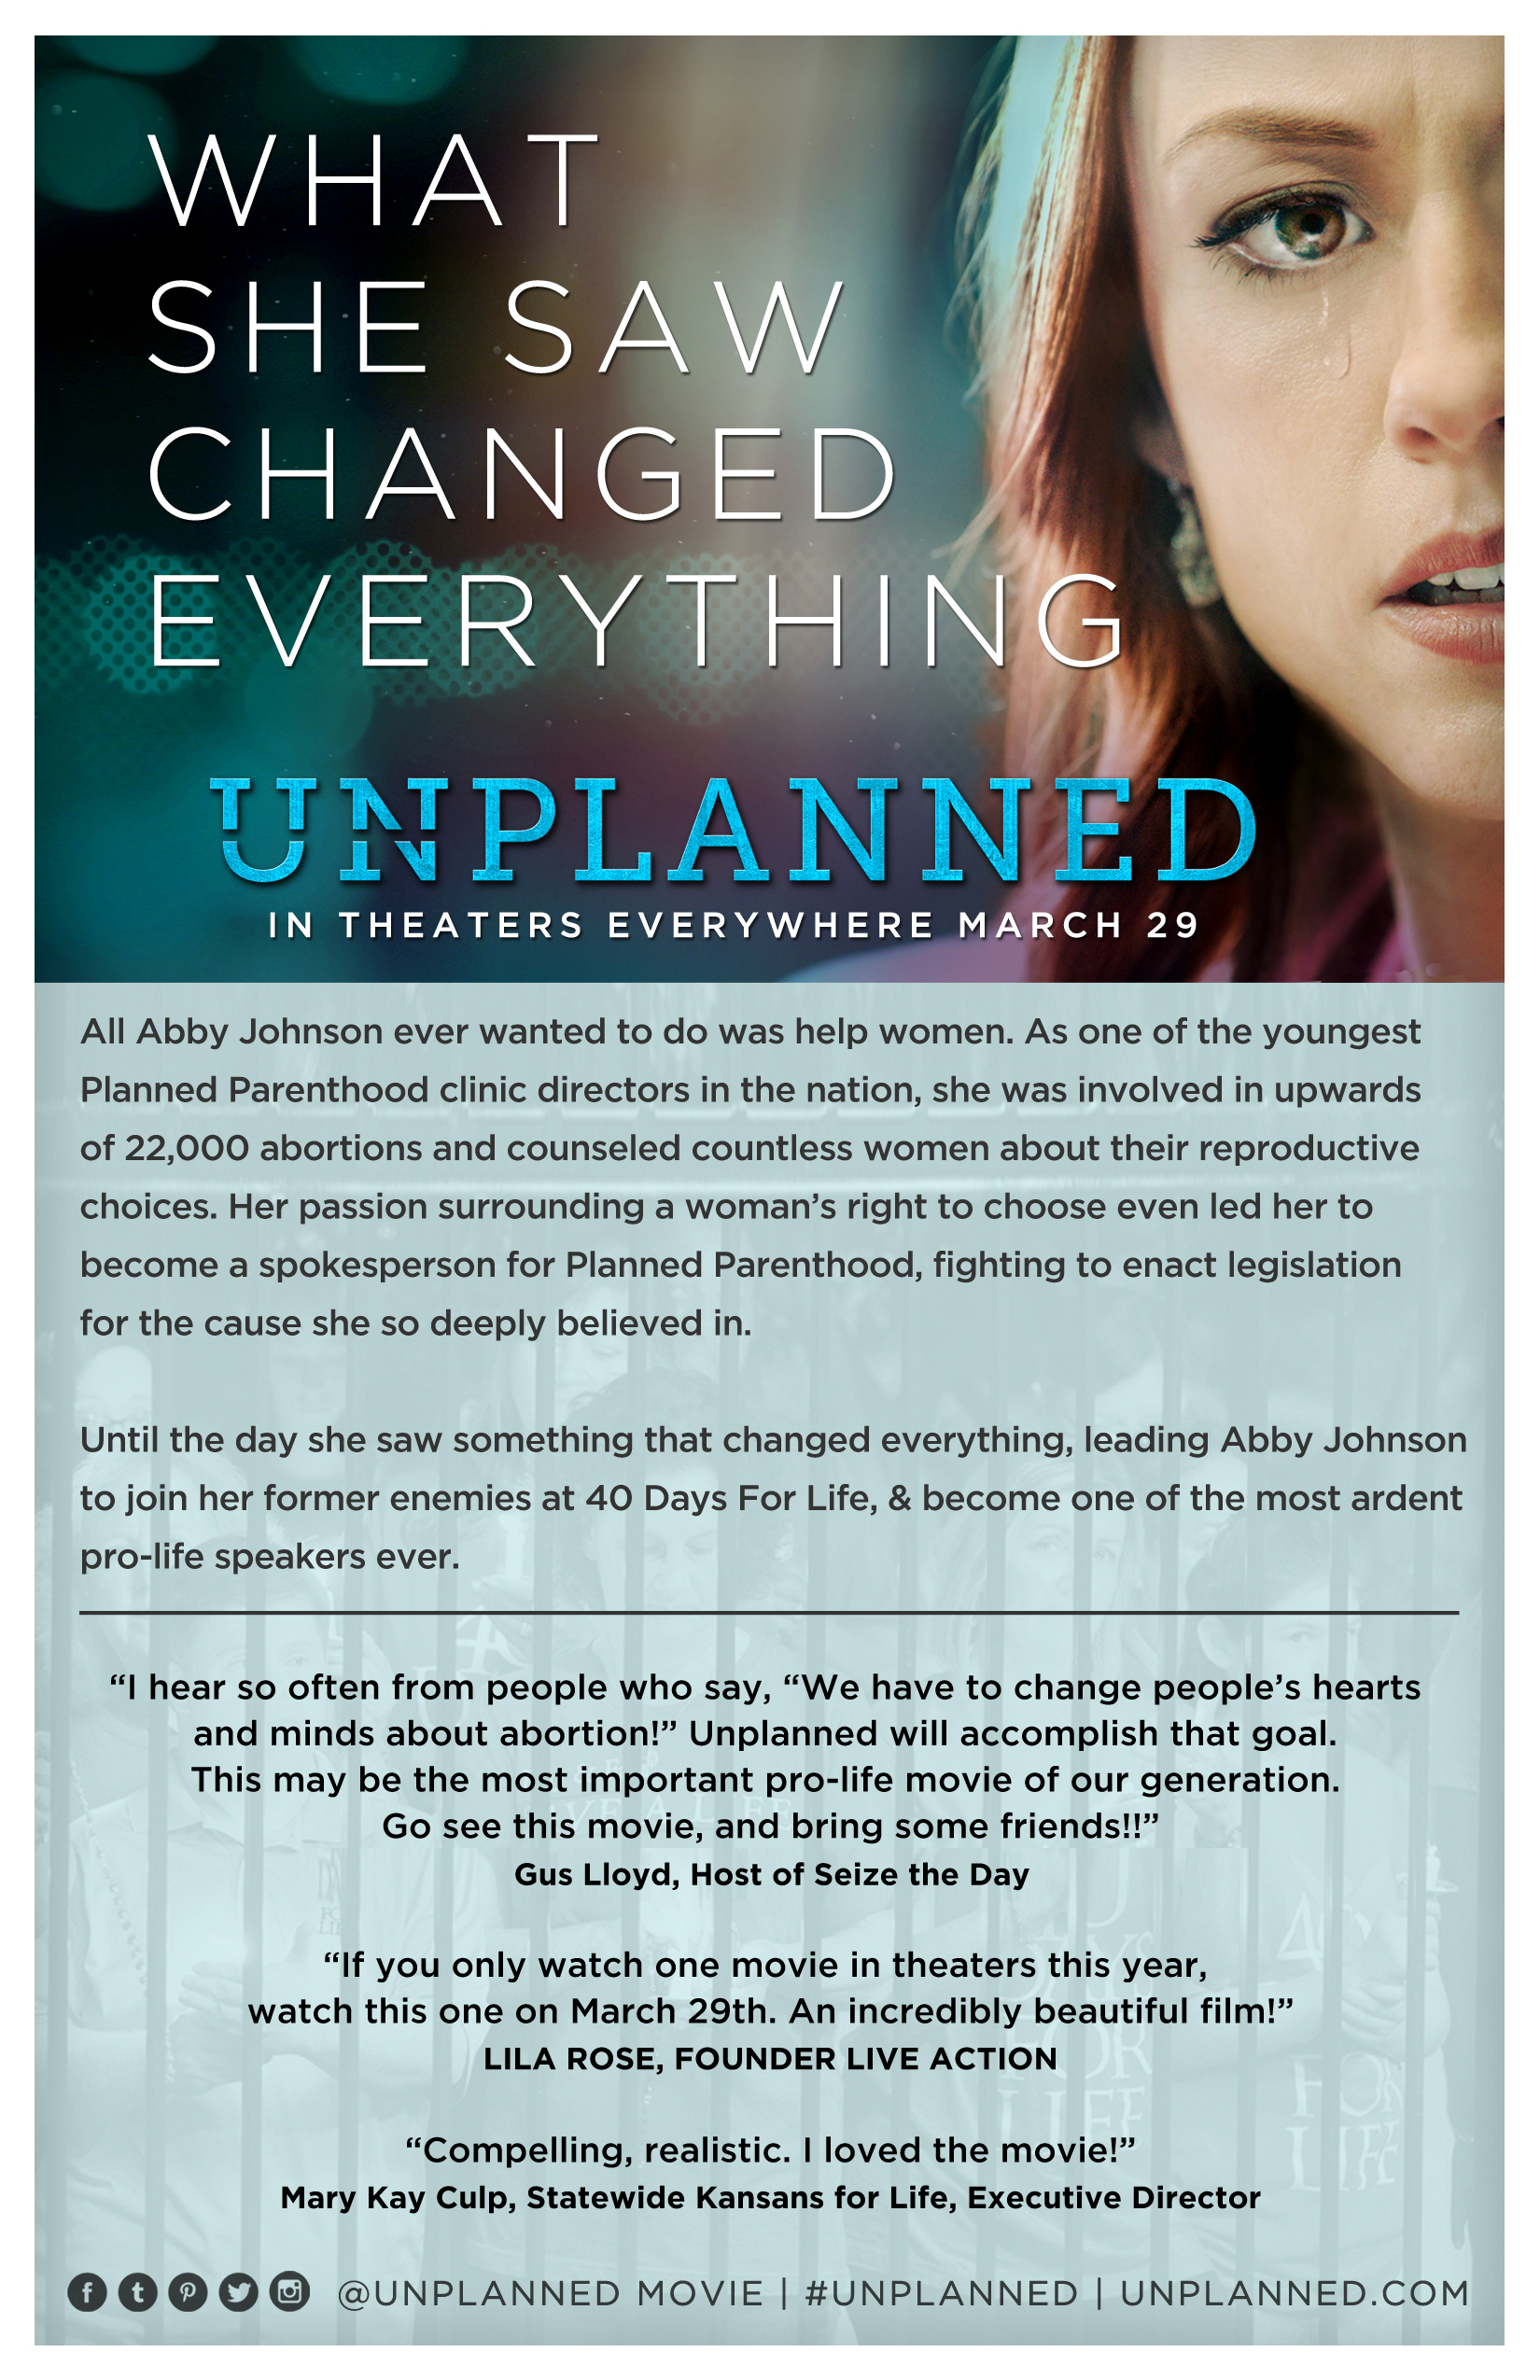 Unplanned Movie coming to Uvalde!!!